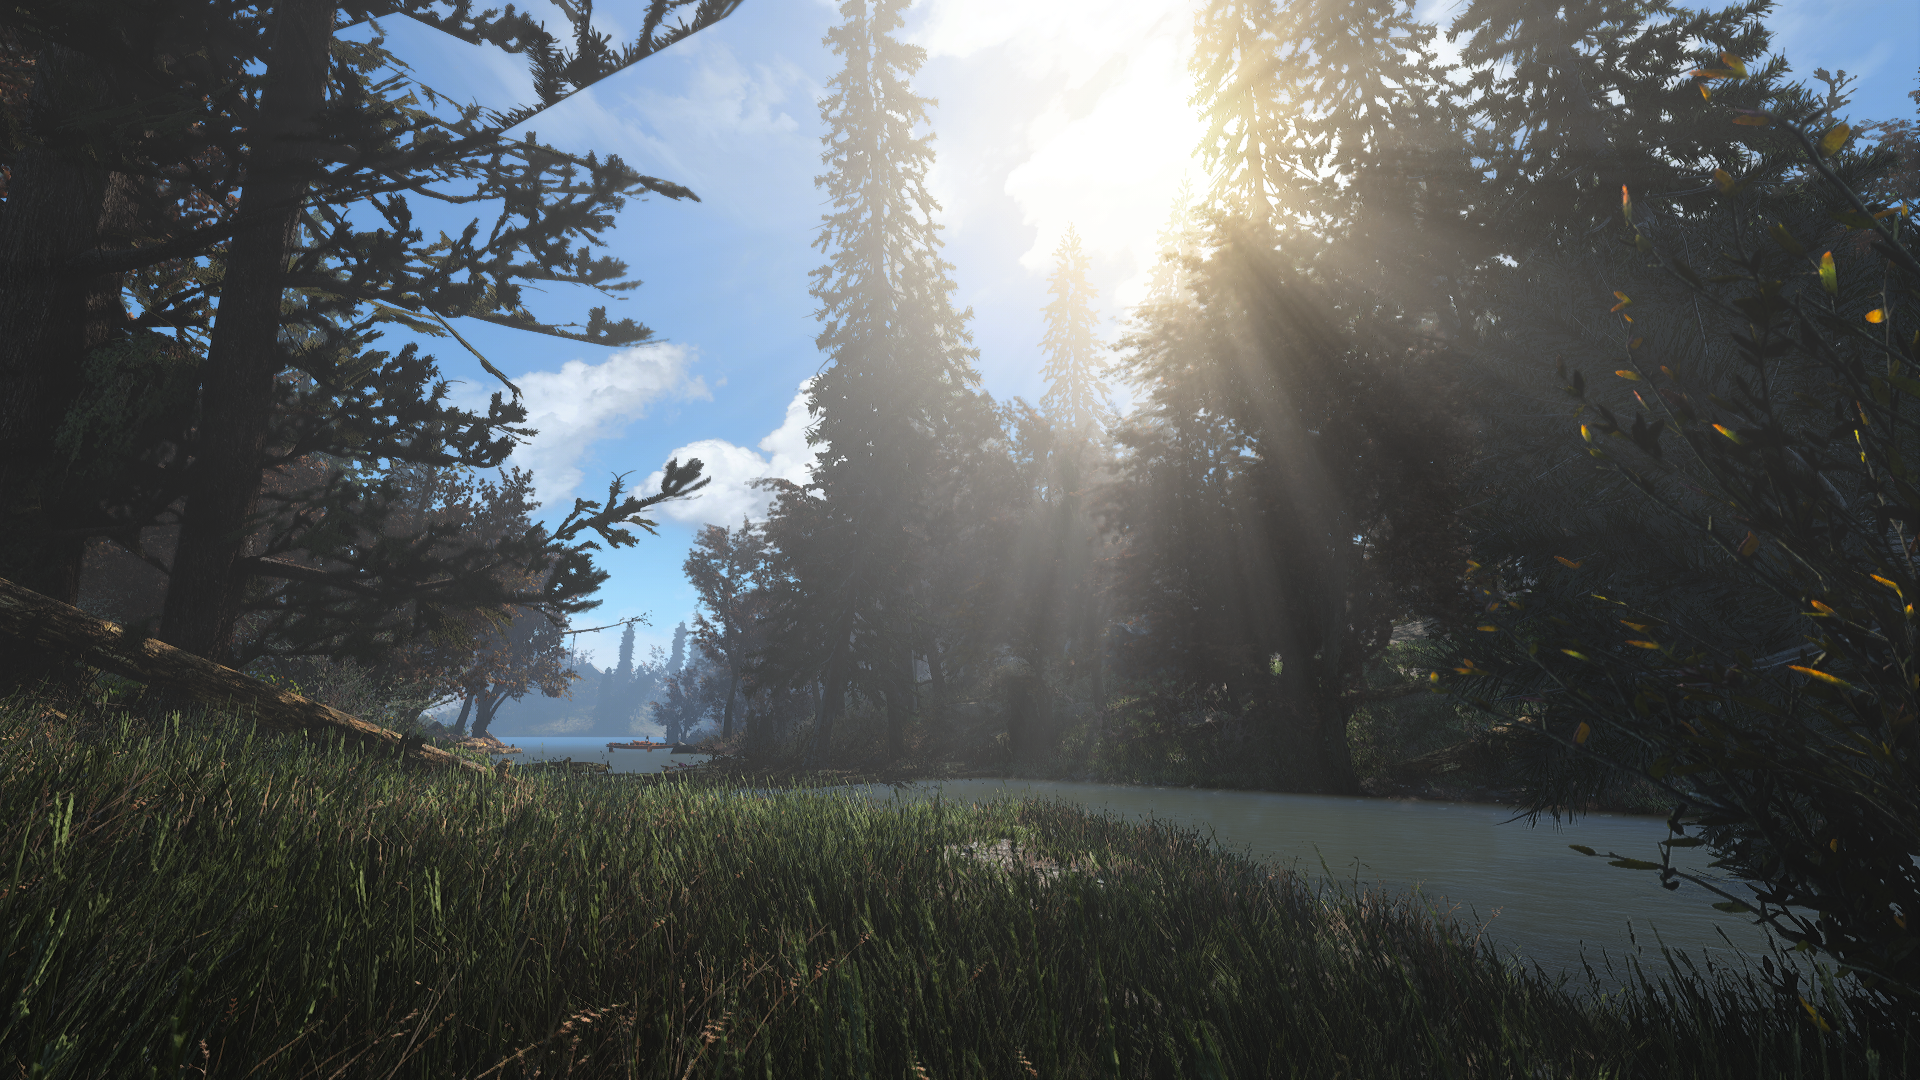 This Fallout 4 graphics mod might be irradiated Boston's most